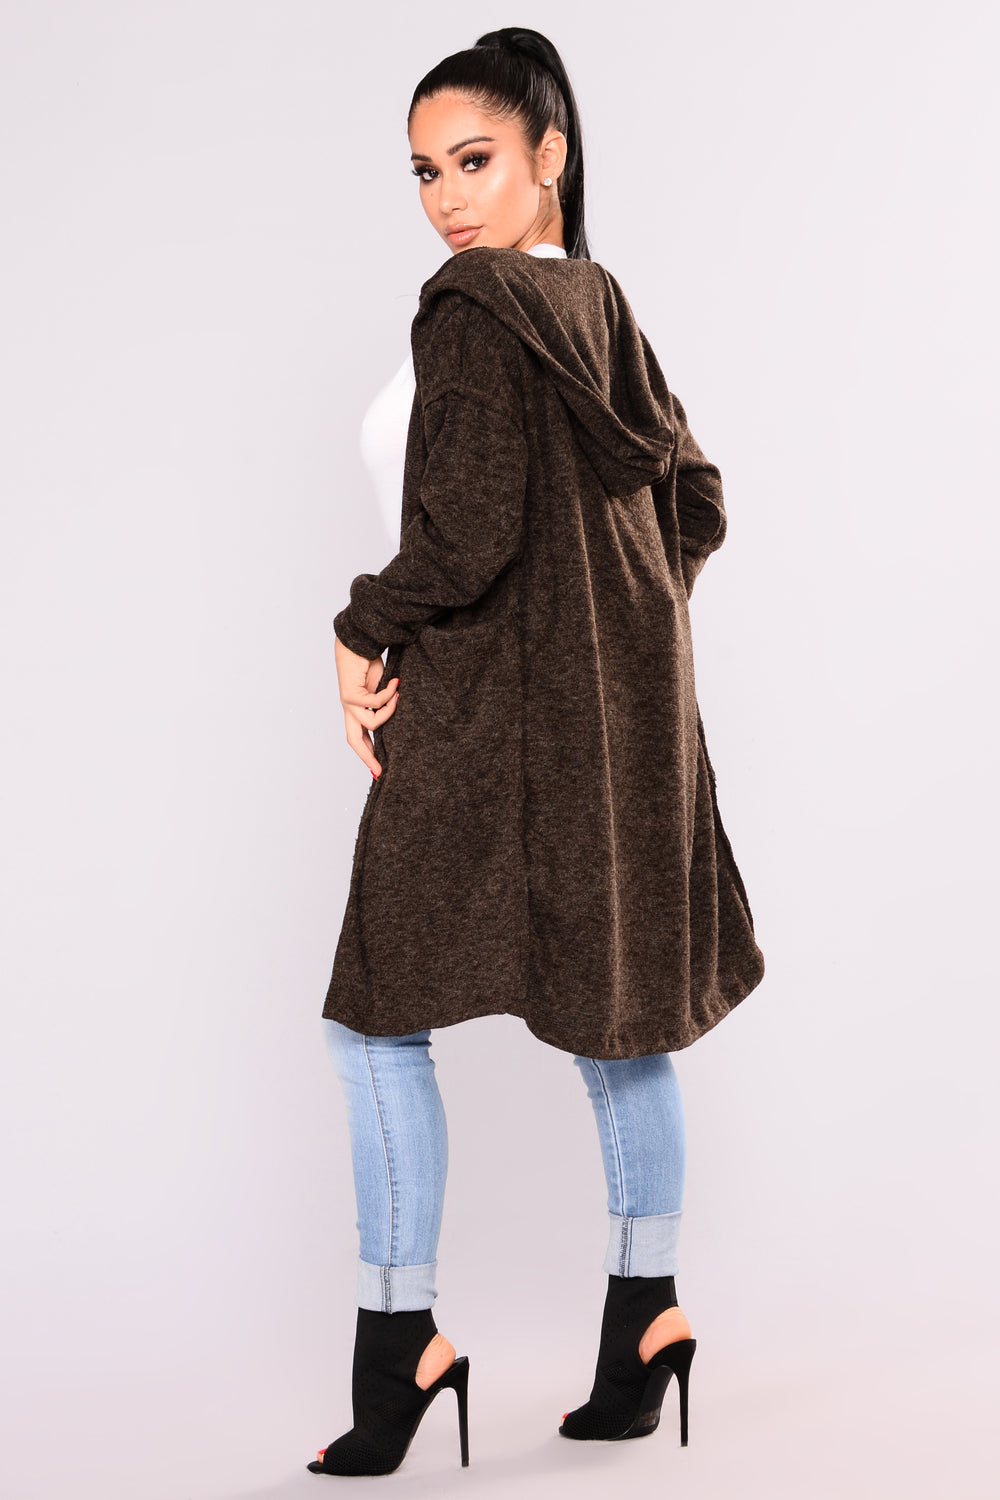 Cozy Winter Hooded Cardigan - Charcoal